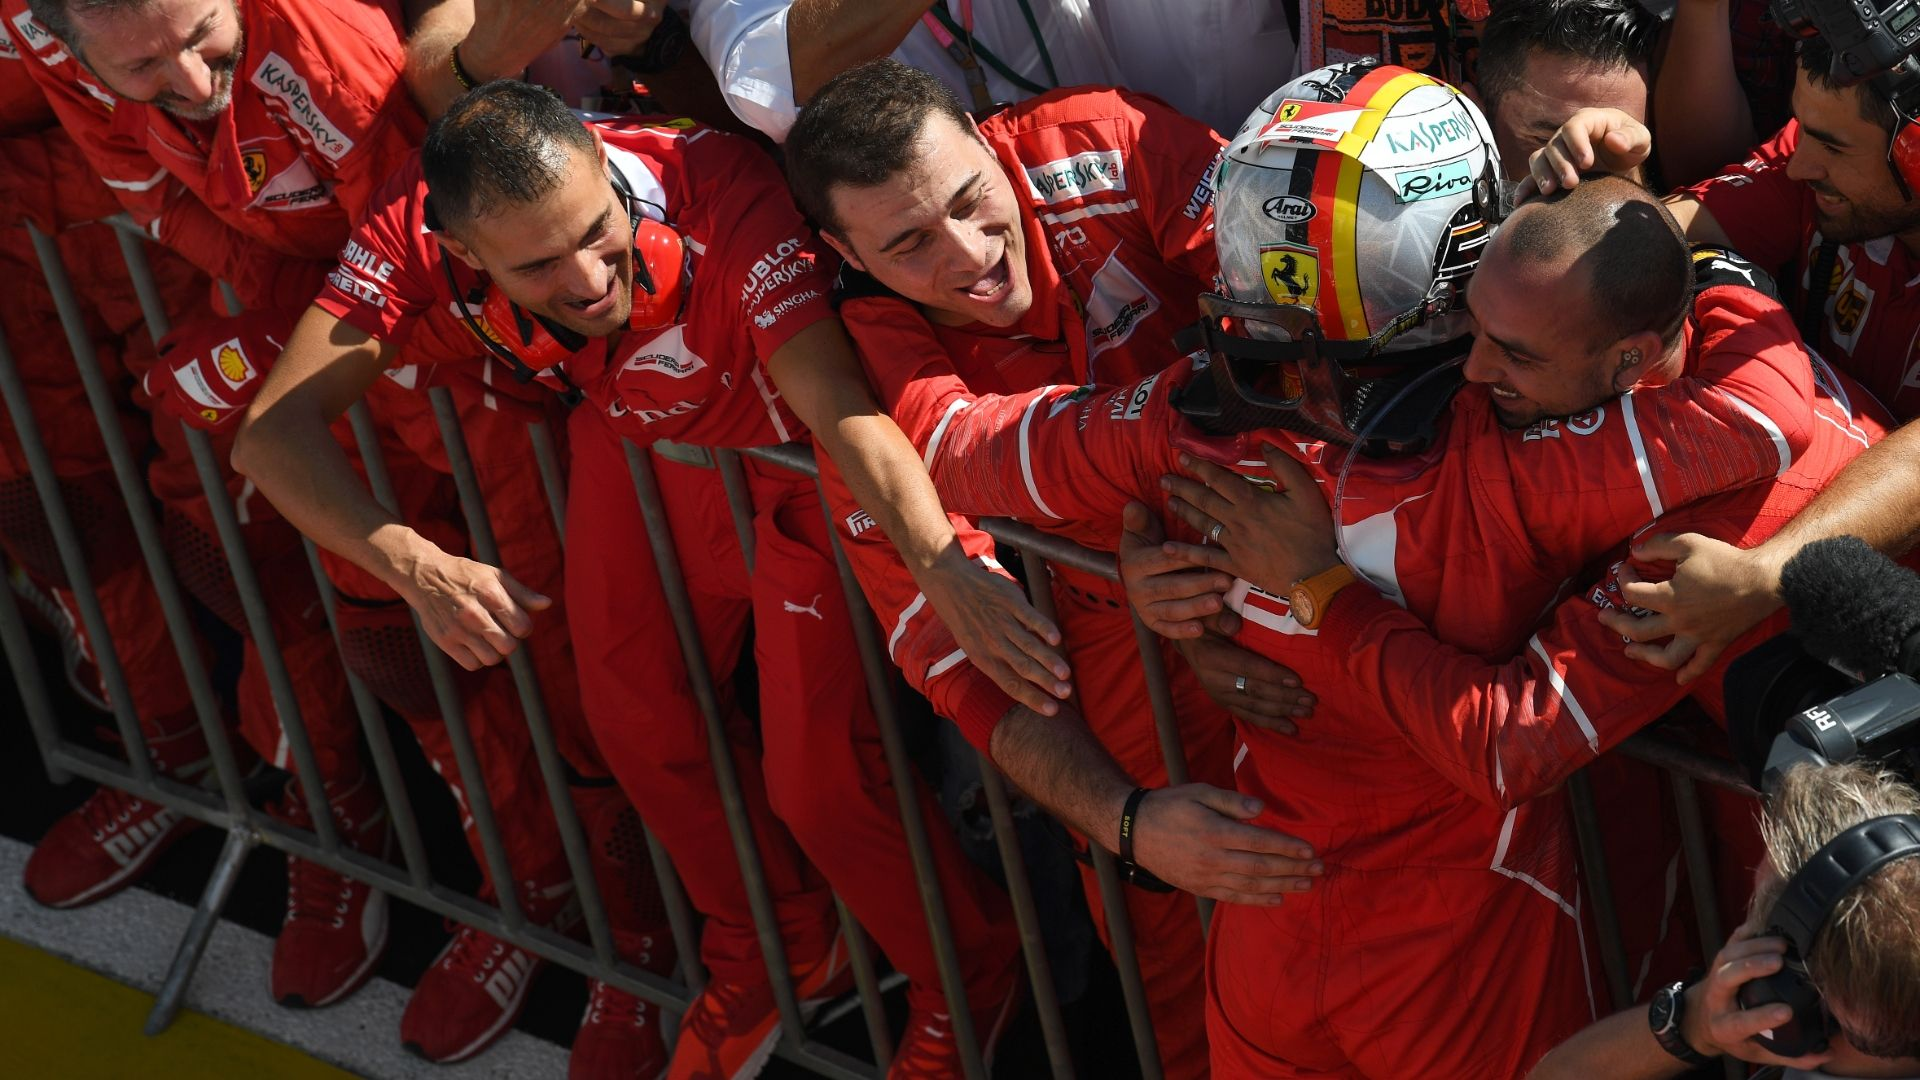 Who said what after the Hungarian Grand Prix